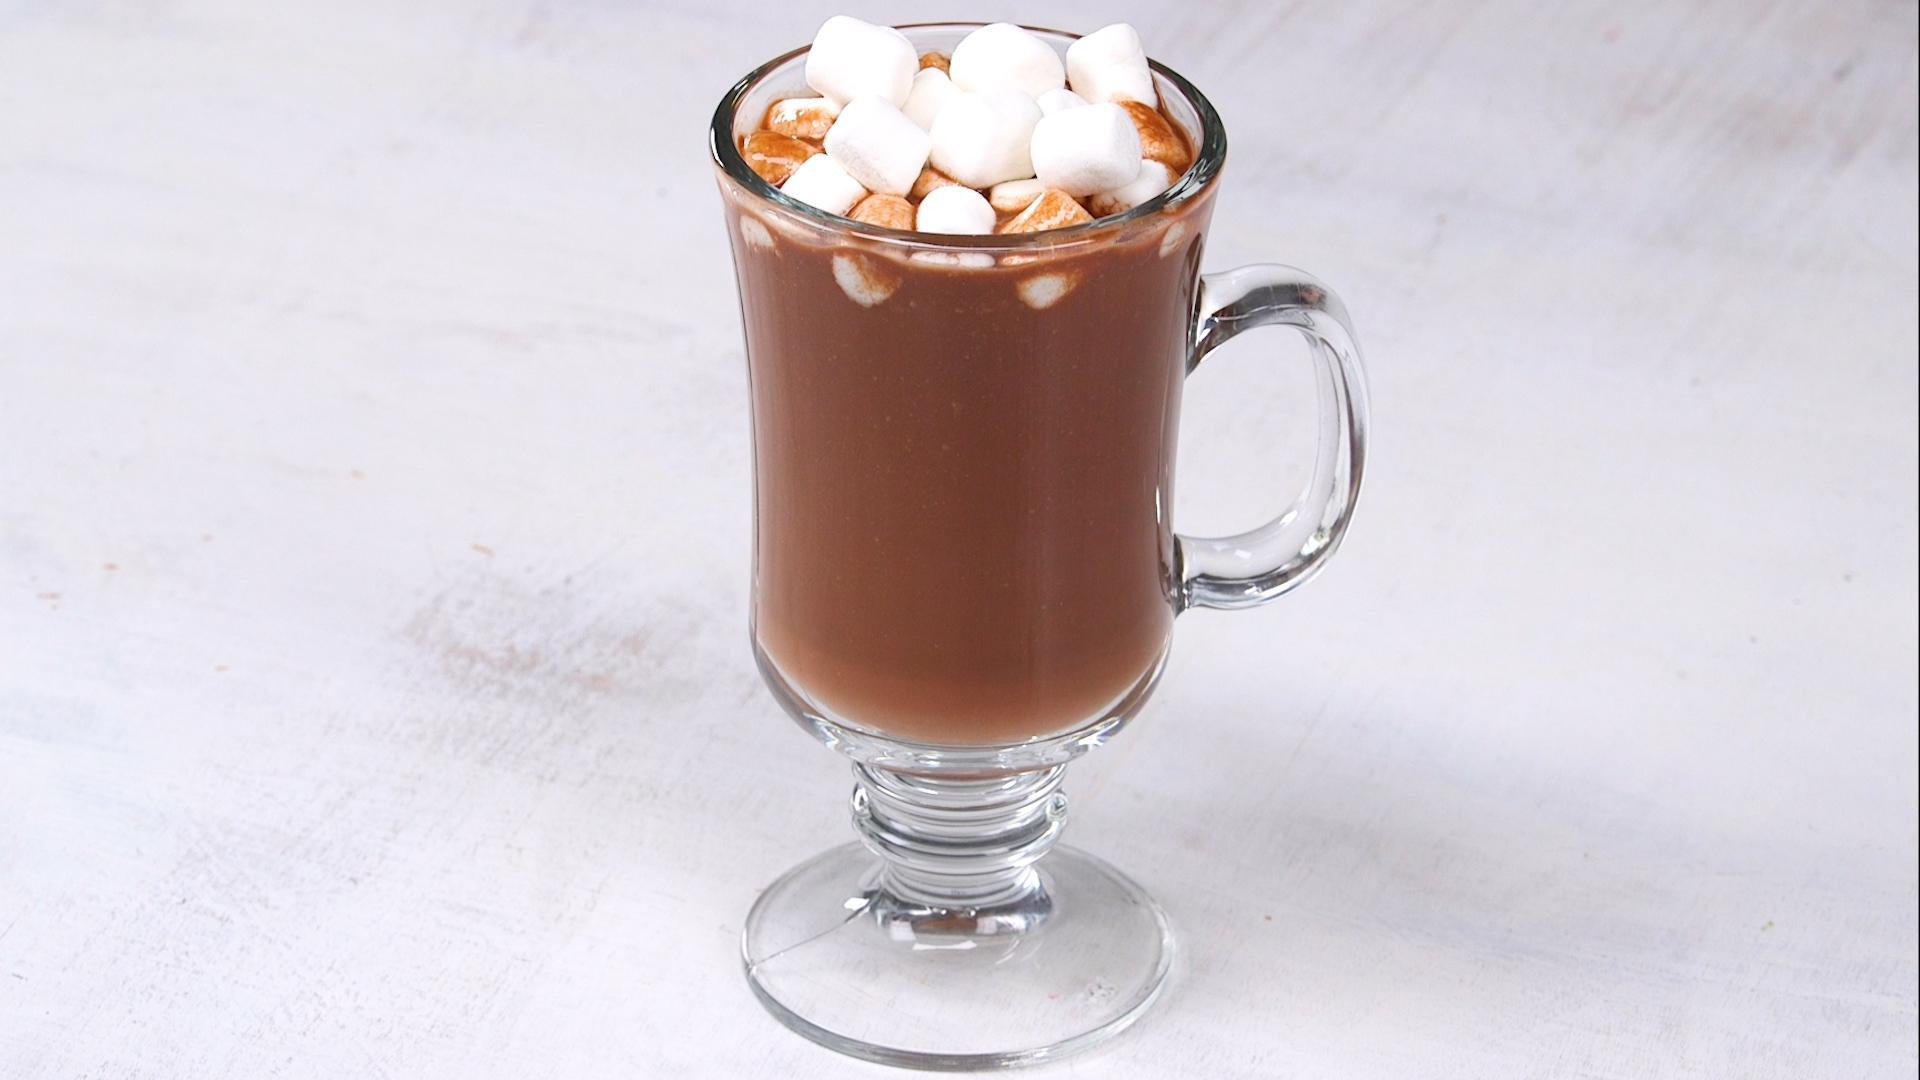 How to Make Creamy Dairy-Free Hot Chocolate